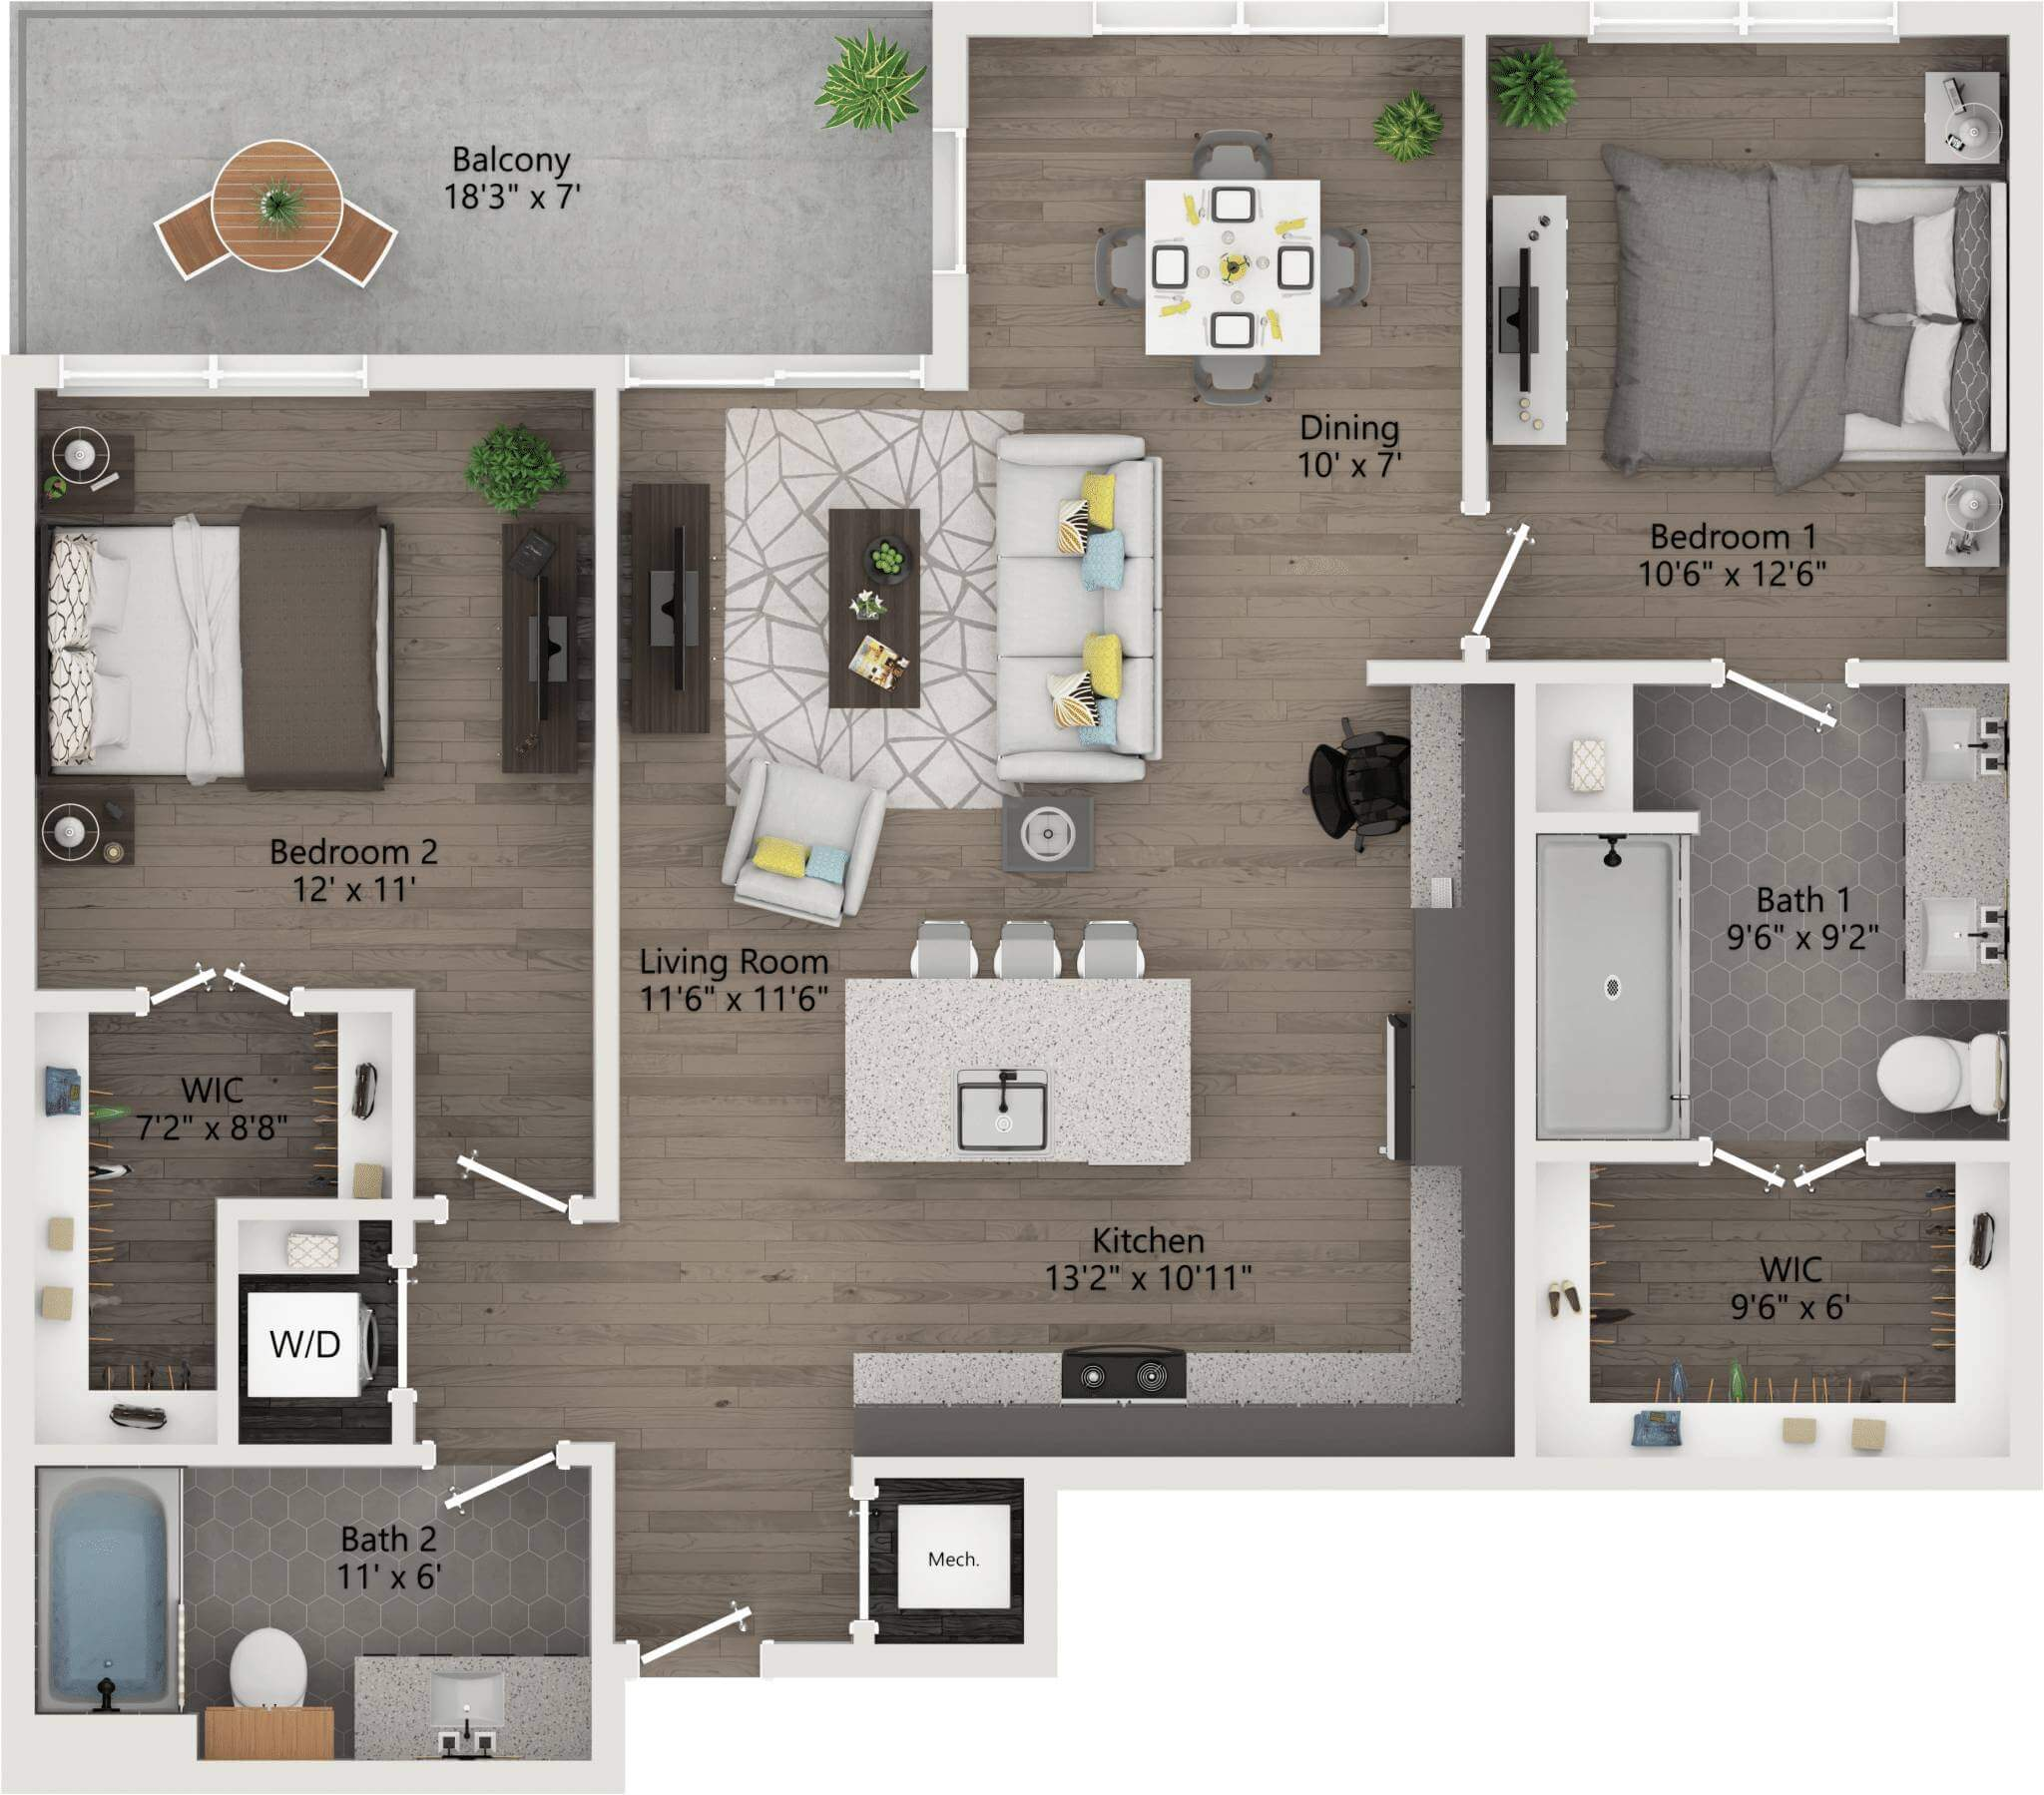 two Bedroom 1,146ft,129ft,patio